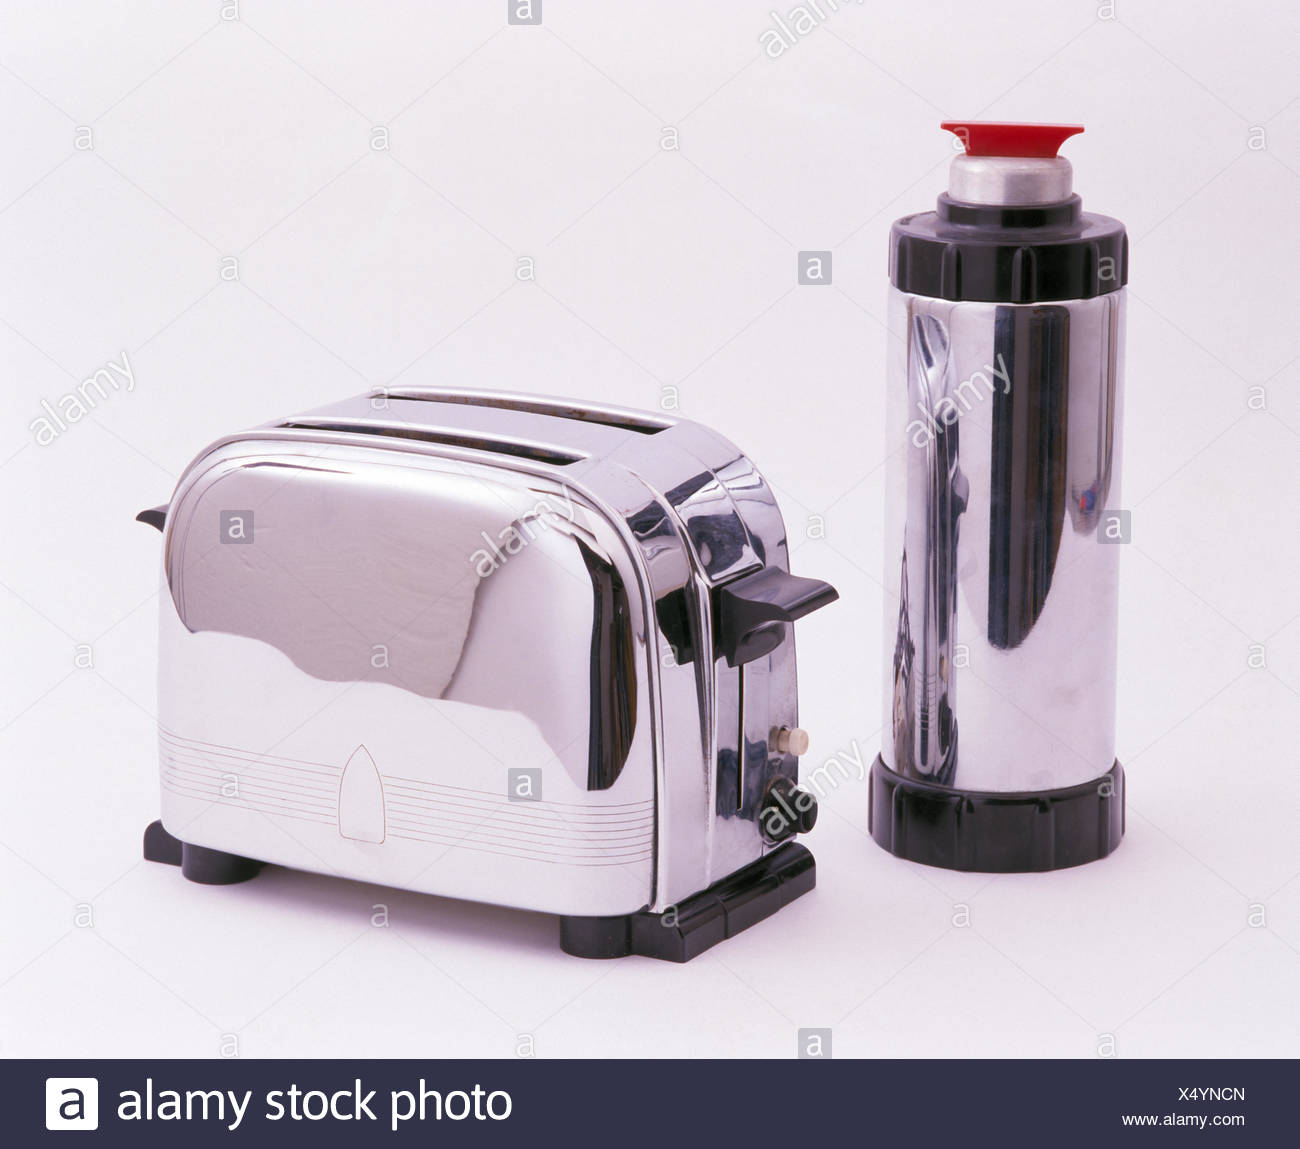 Close-up of stainless steel toaster and flask - Stock Image